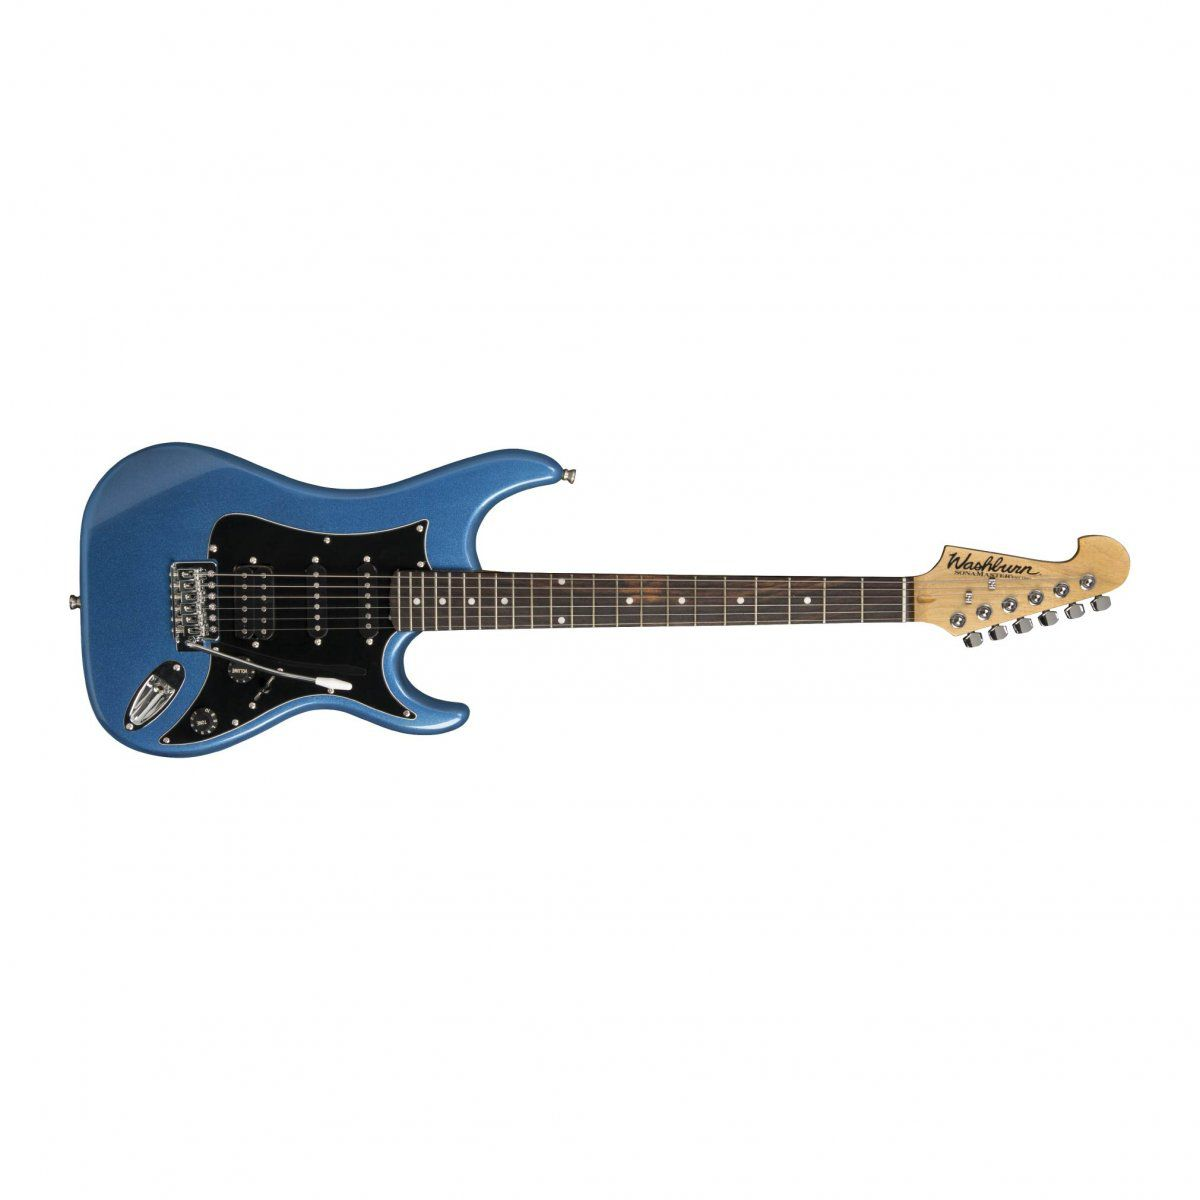 Guitarra Washburn Sonamaster S2hm Metallic Blue